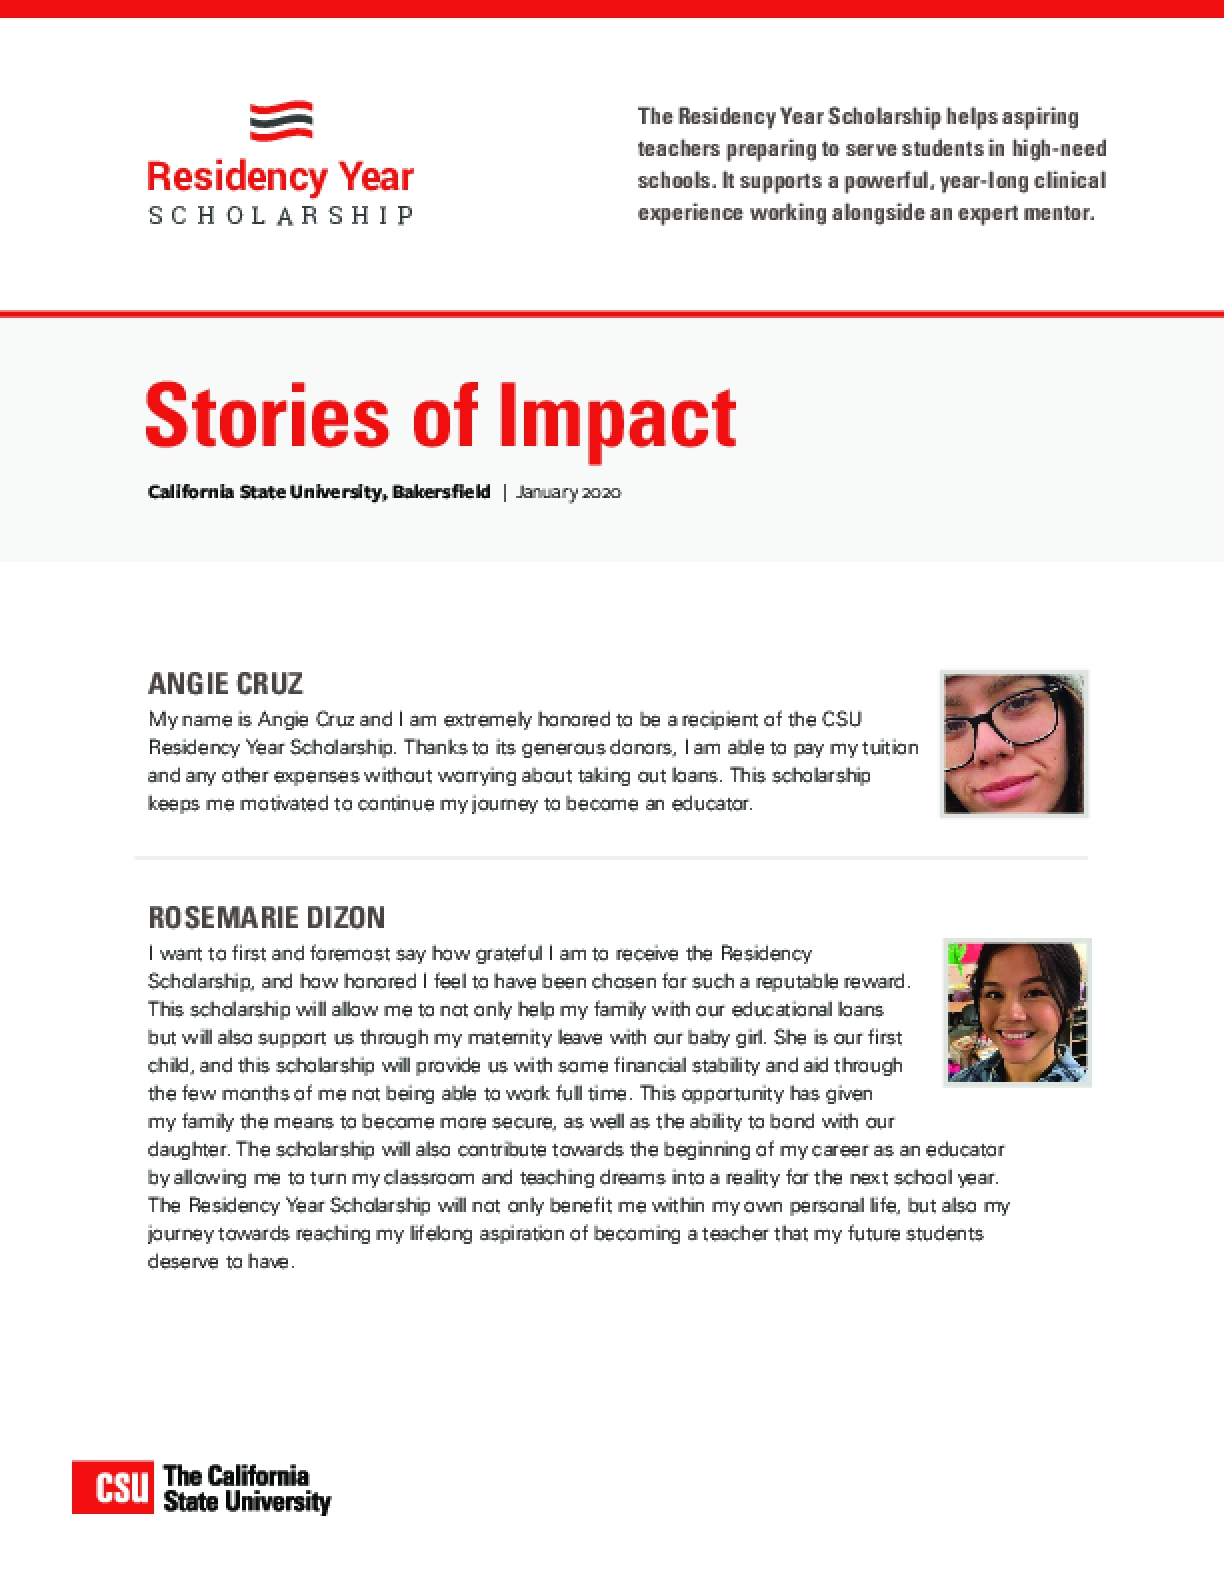 Residency Year Scholarship Stories of Impact: California State University, Bakersfield